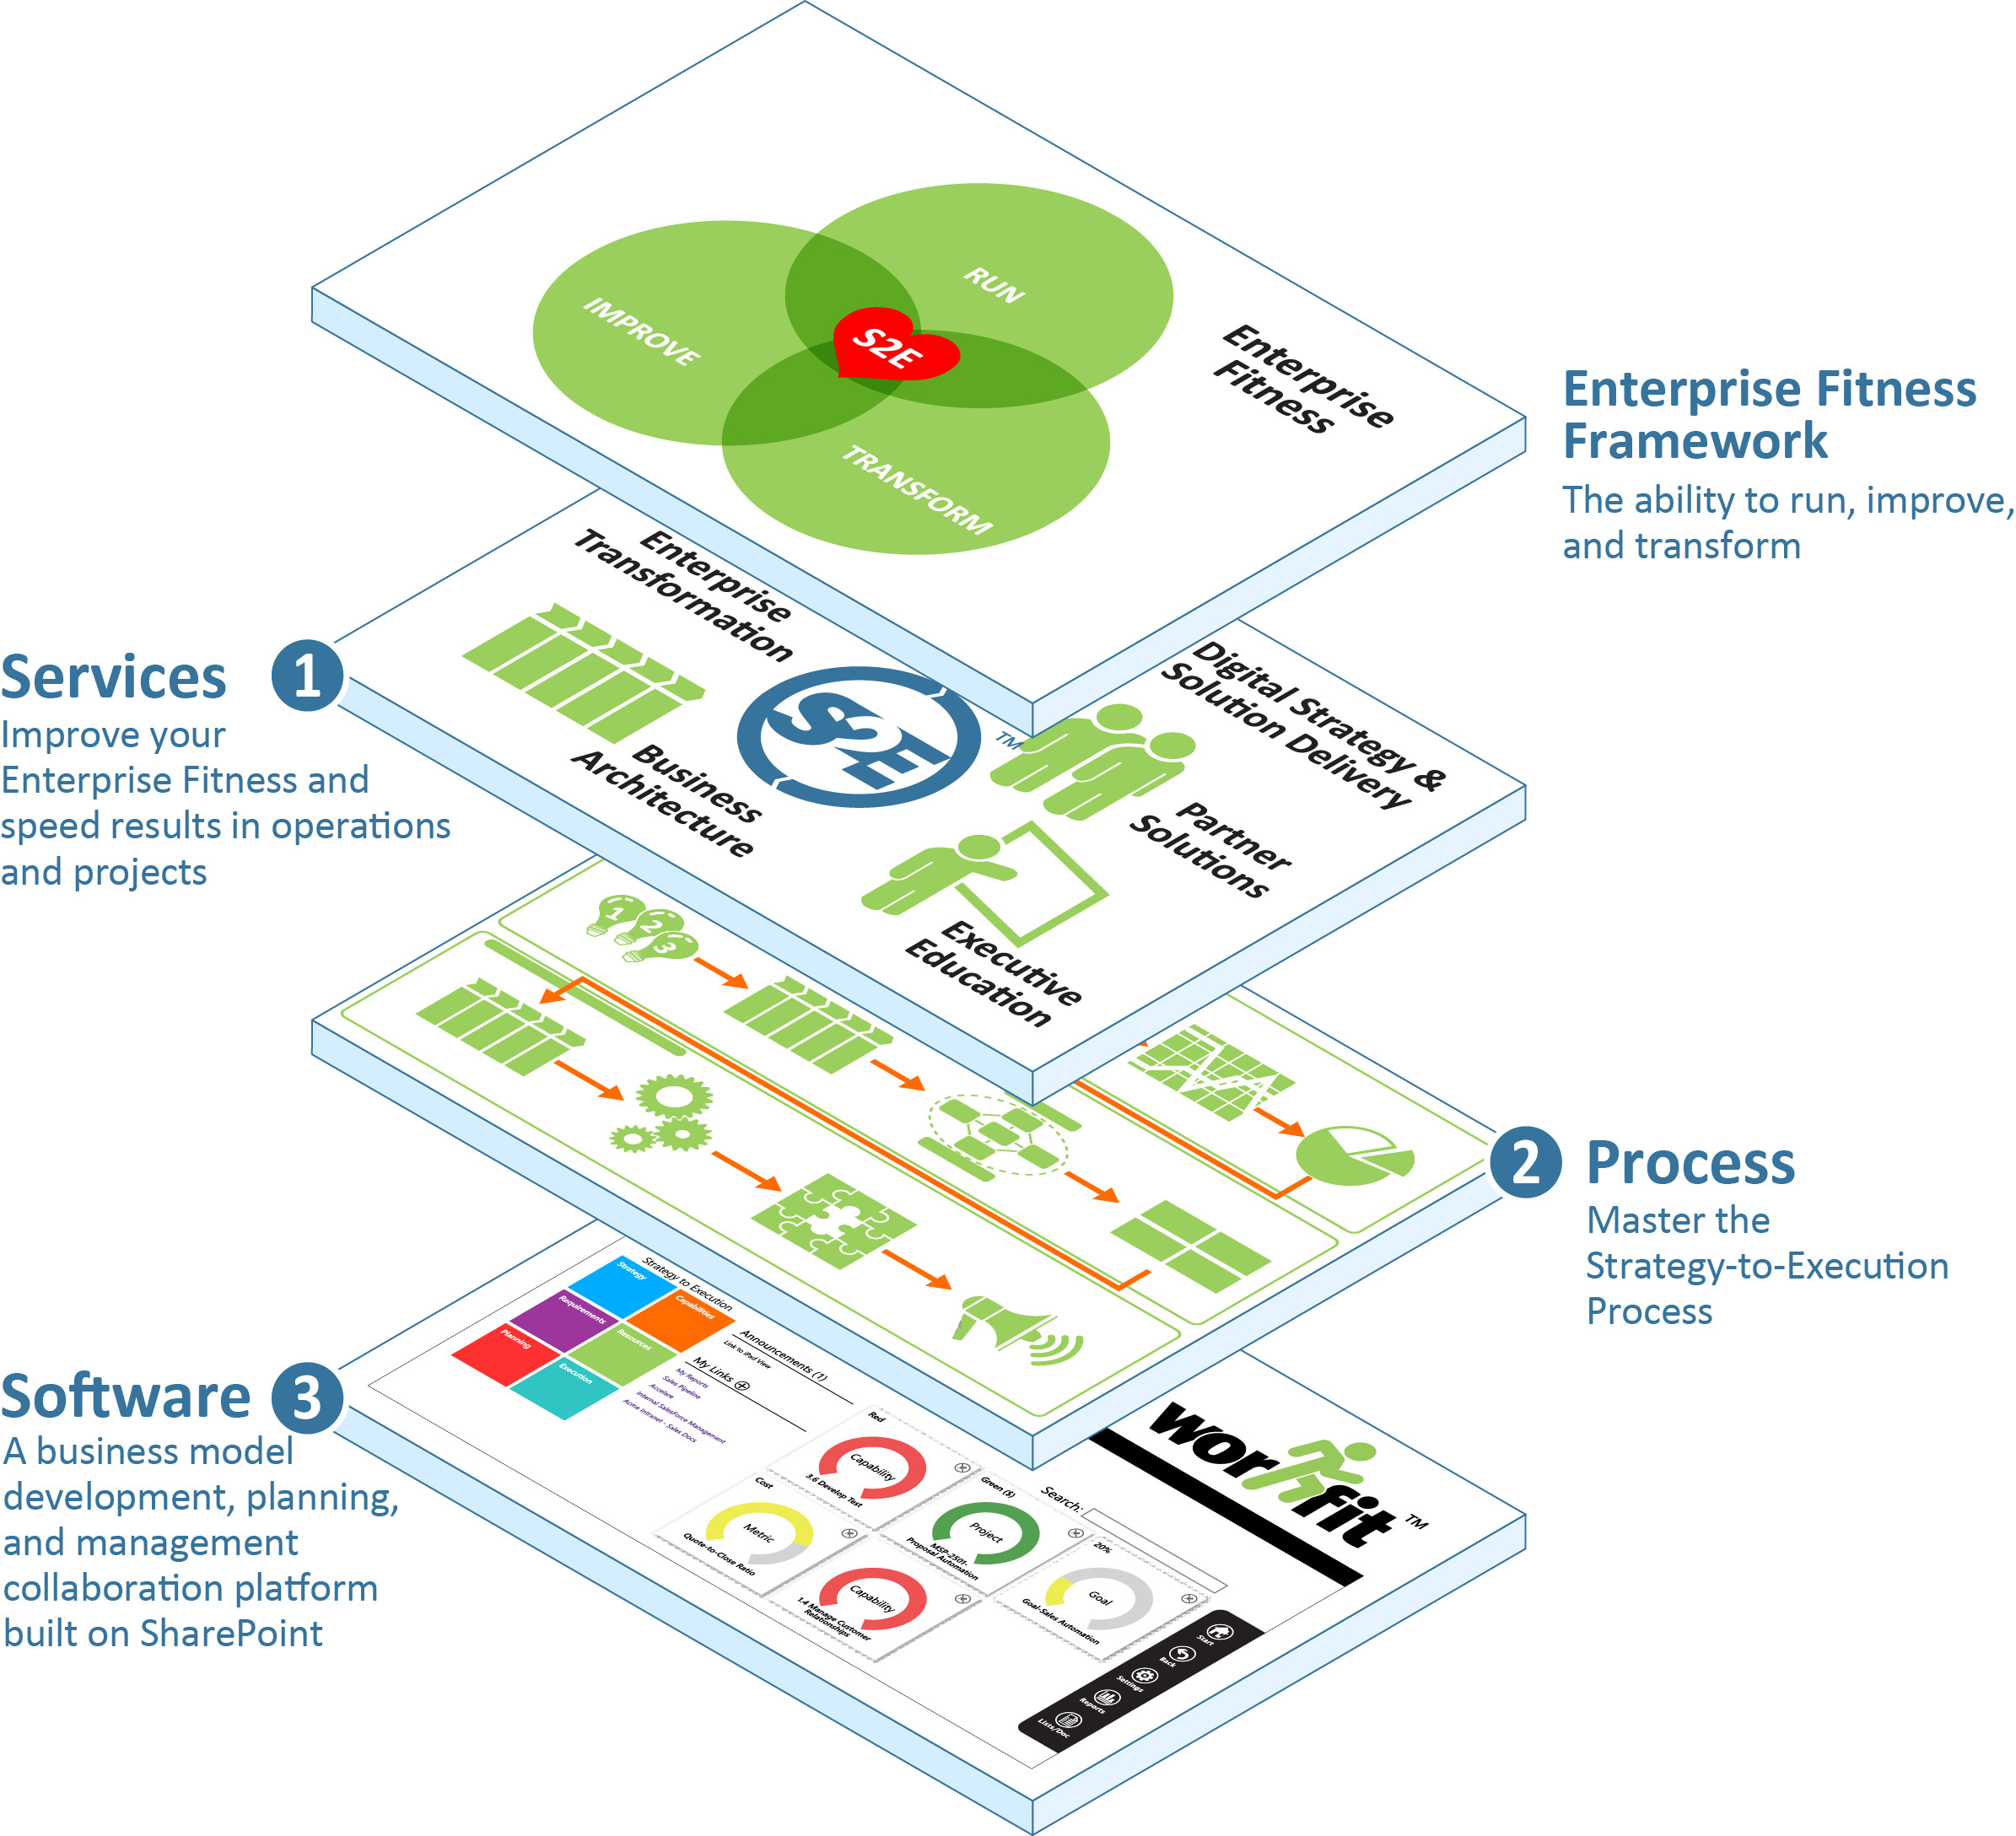 Accelare Enterprise Fitness framework to run, improve, and transform